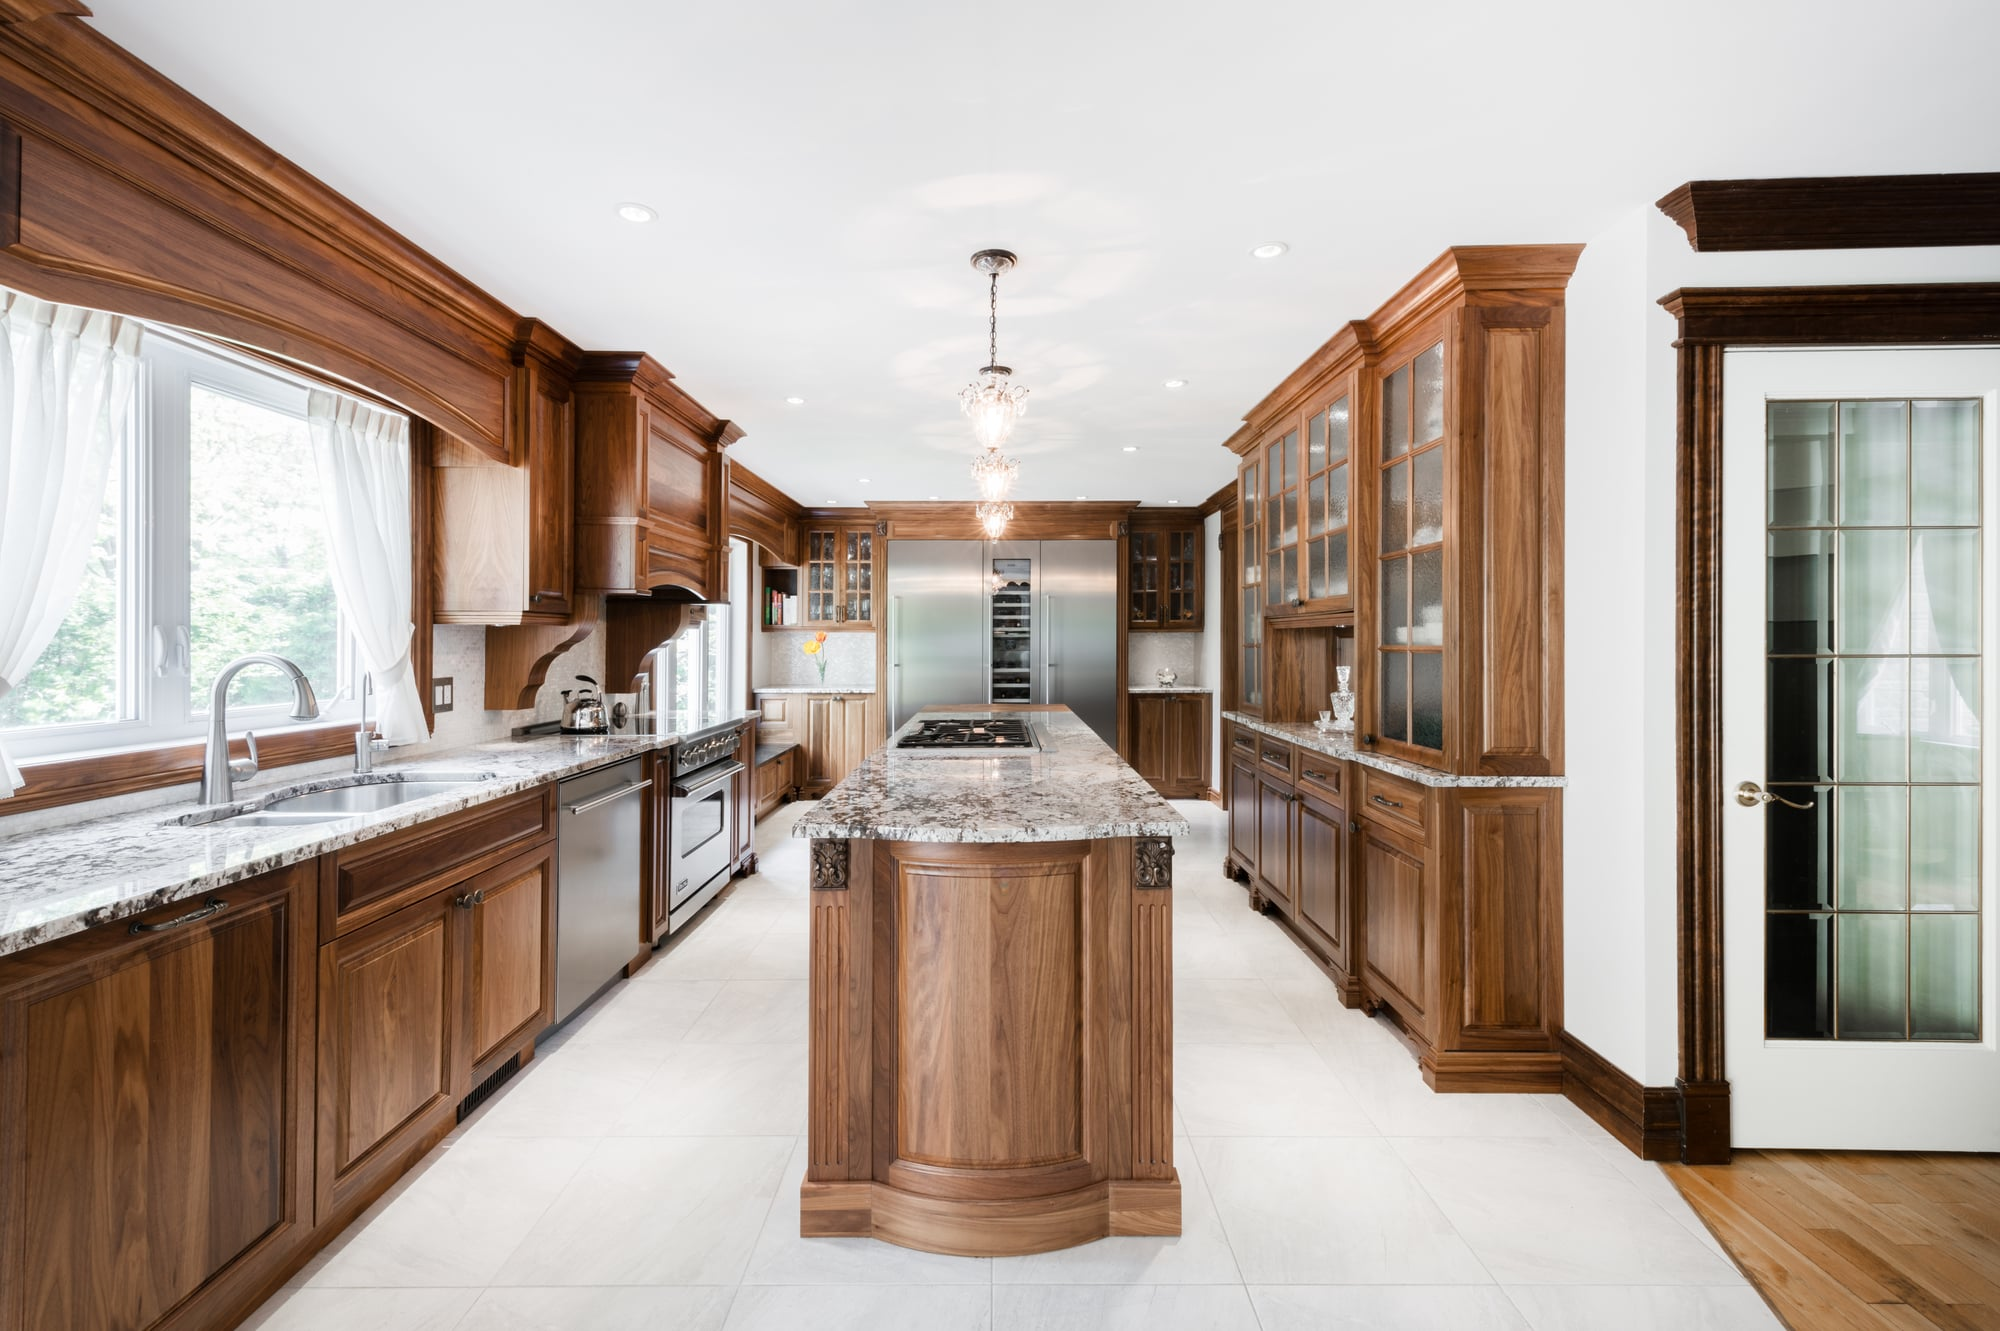 wooden classic kitchen renovation with a big island and granit countertops